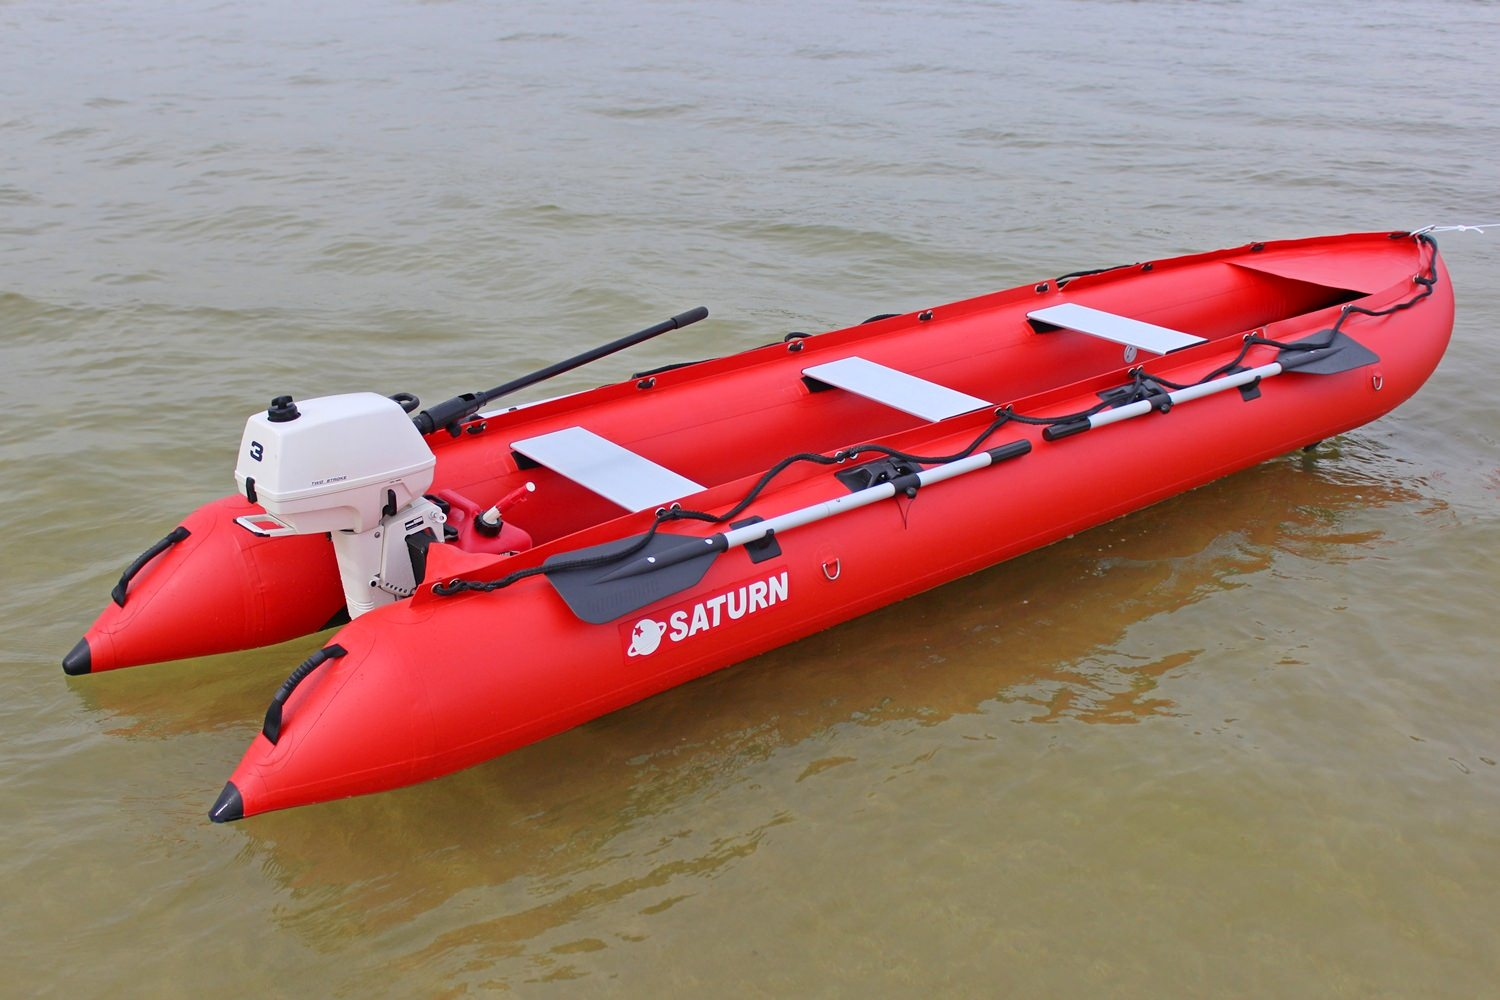 15 Inflatable Kayak Amp Inflatable Boat Crossover Kaboat